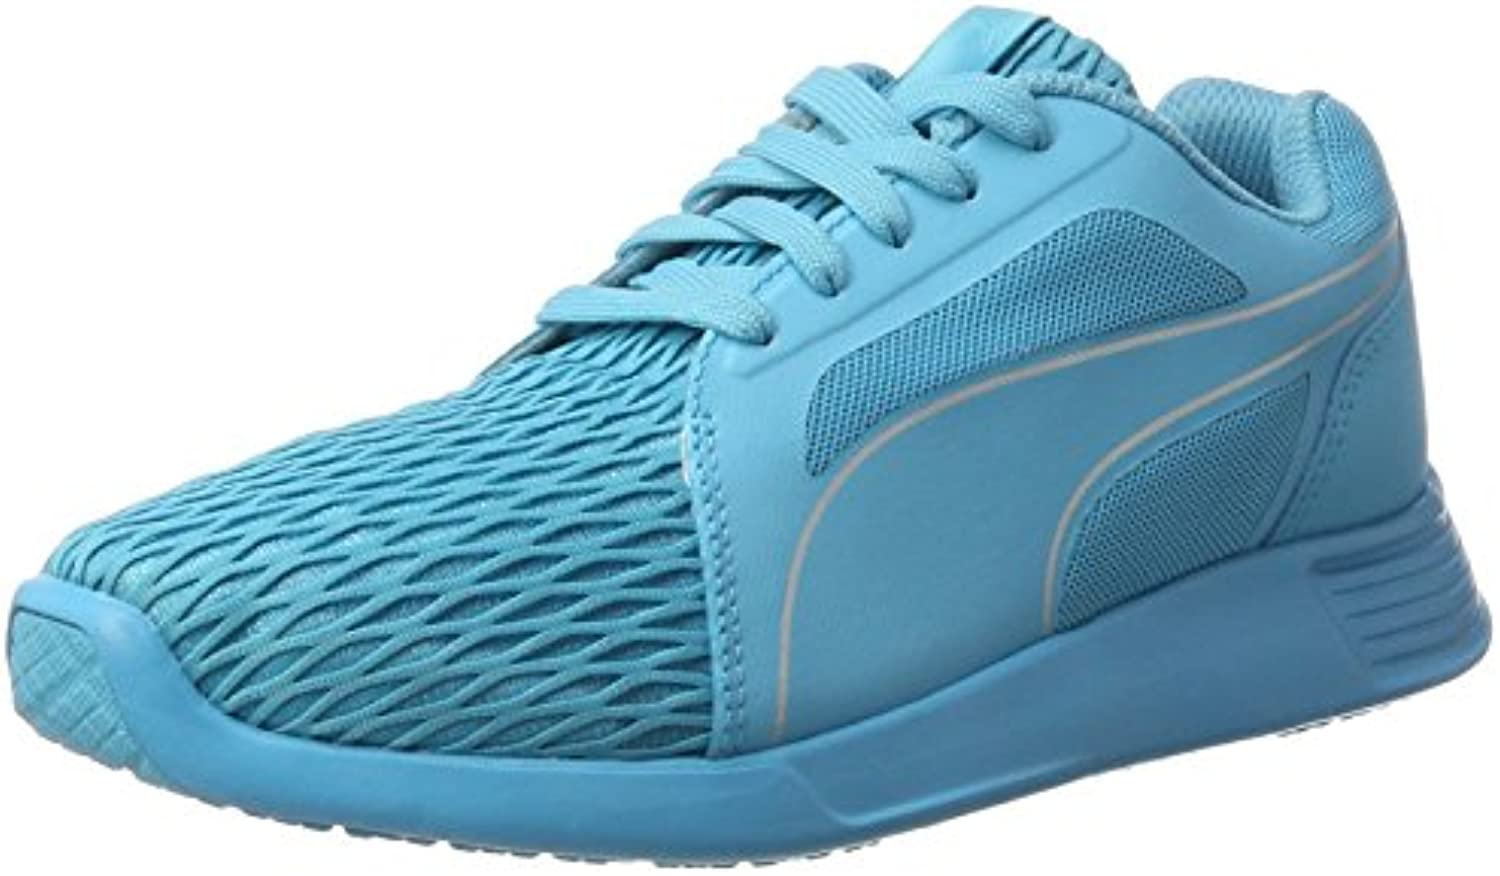 Puma St Trainer EVO Breathe, Zapatillas Unisex Adulto